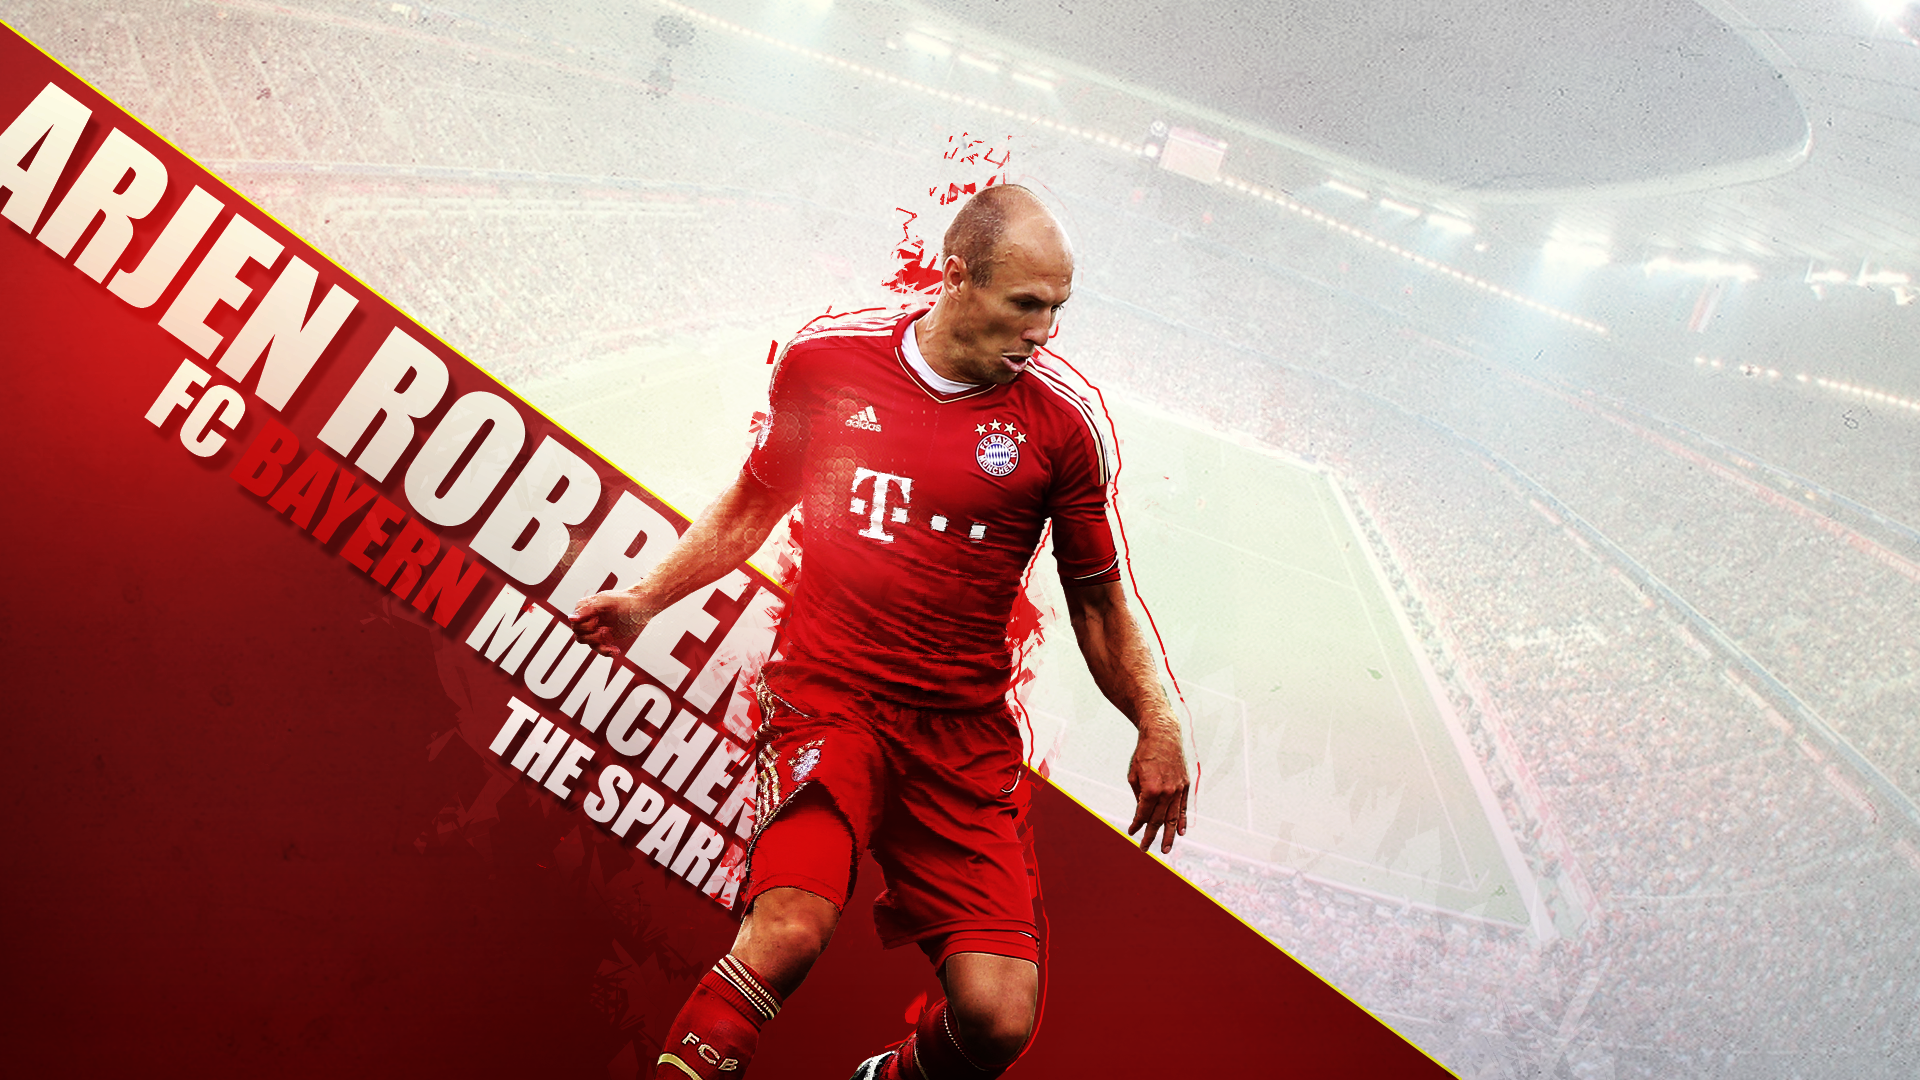 Arjen Robben Wallpaper Widescreen 2015